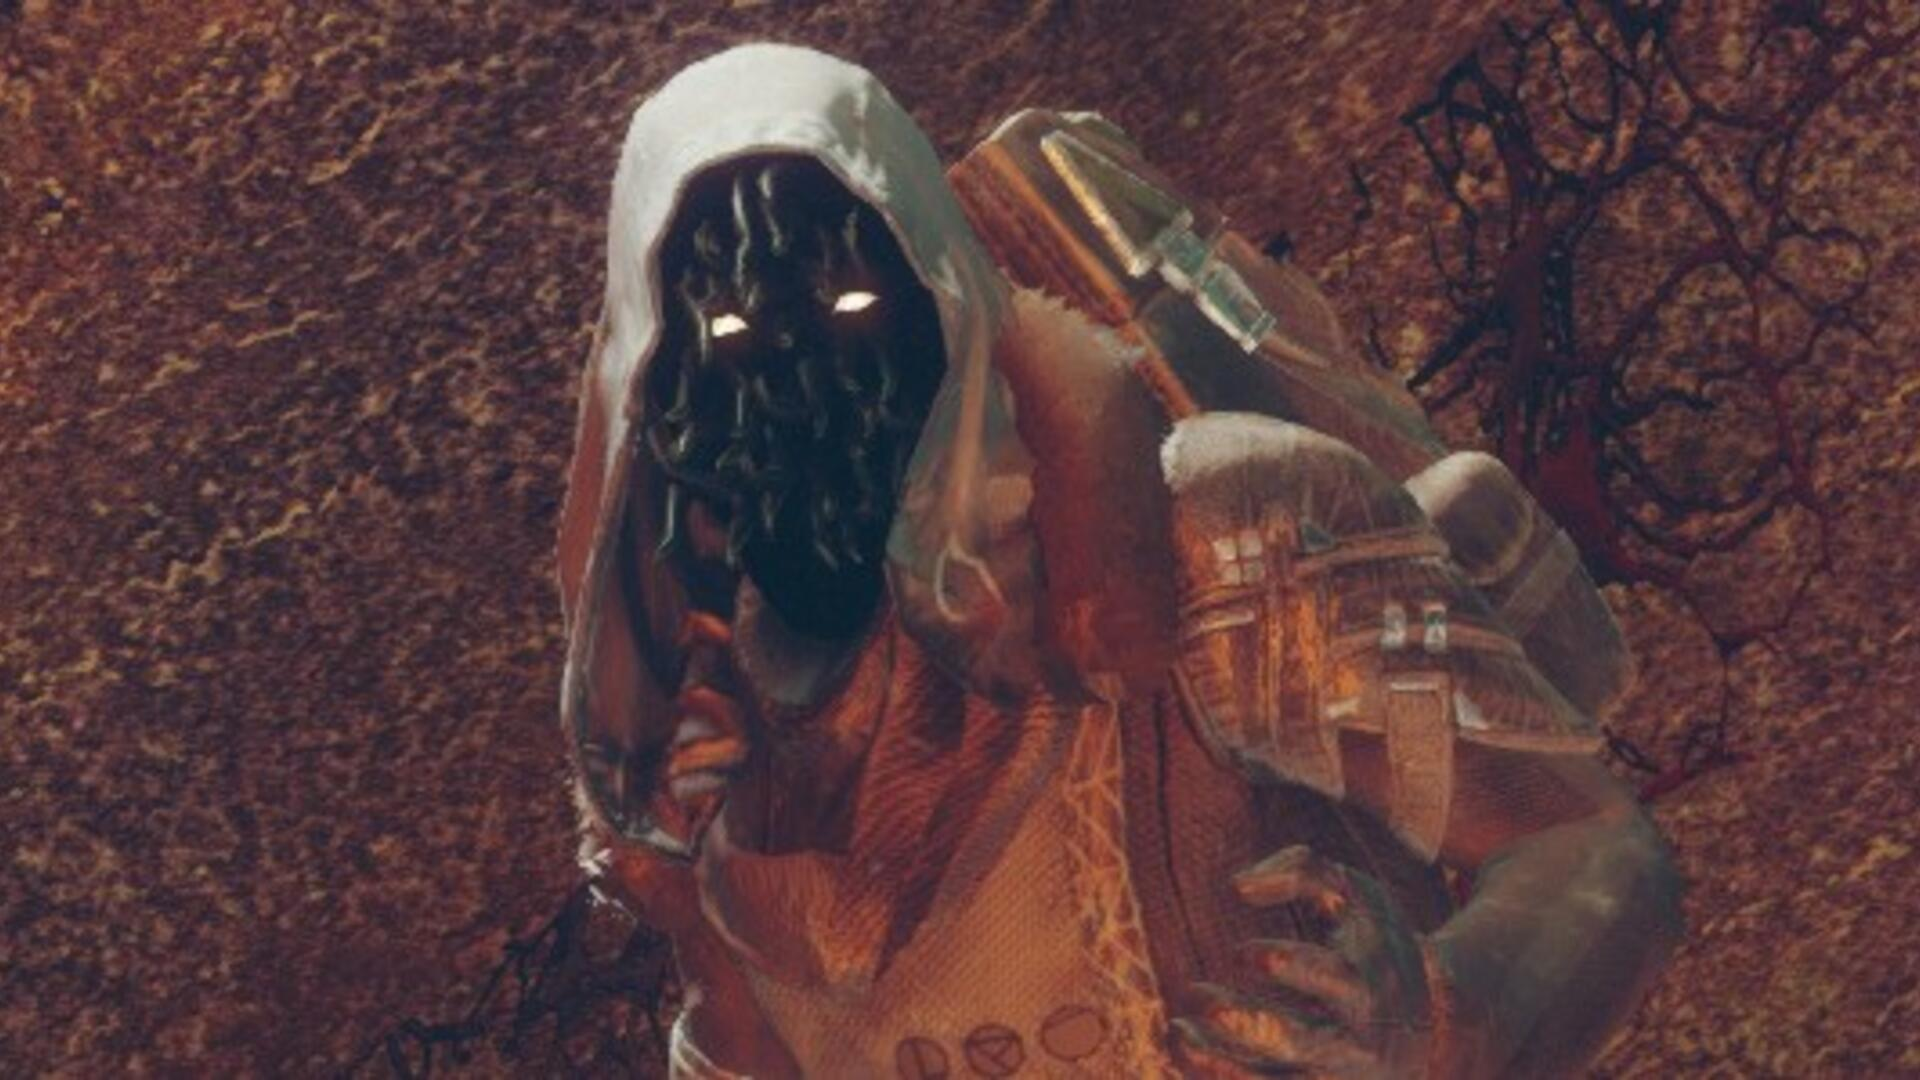 Destiny 2 Xur Location - Fated Engrams Explained, What Time Does Xur Appear in Destiny 2?